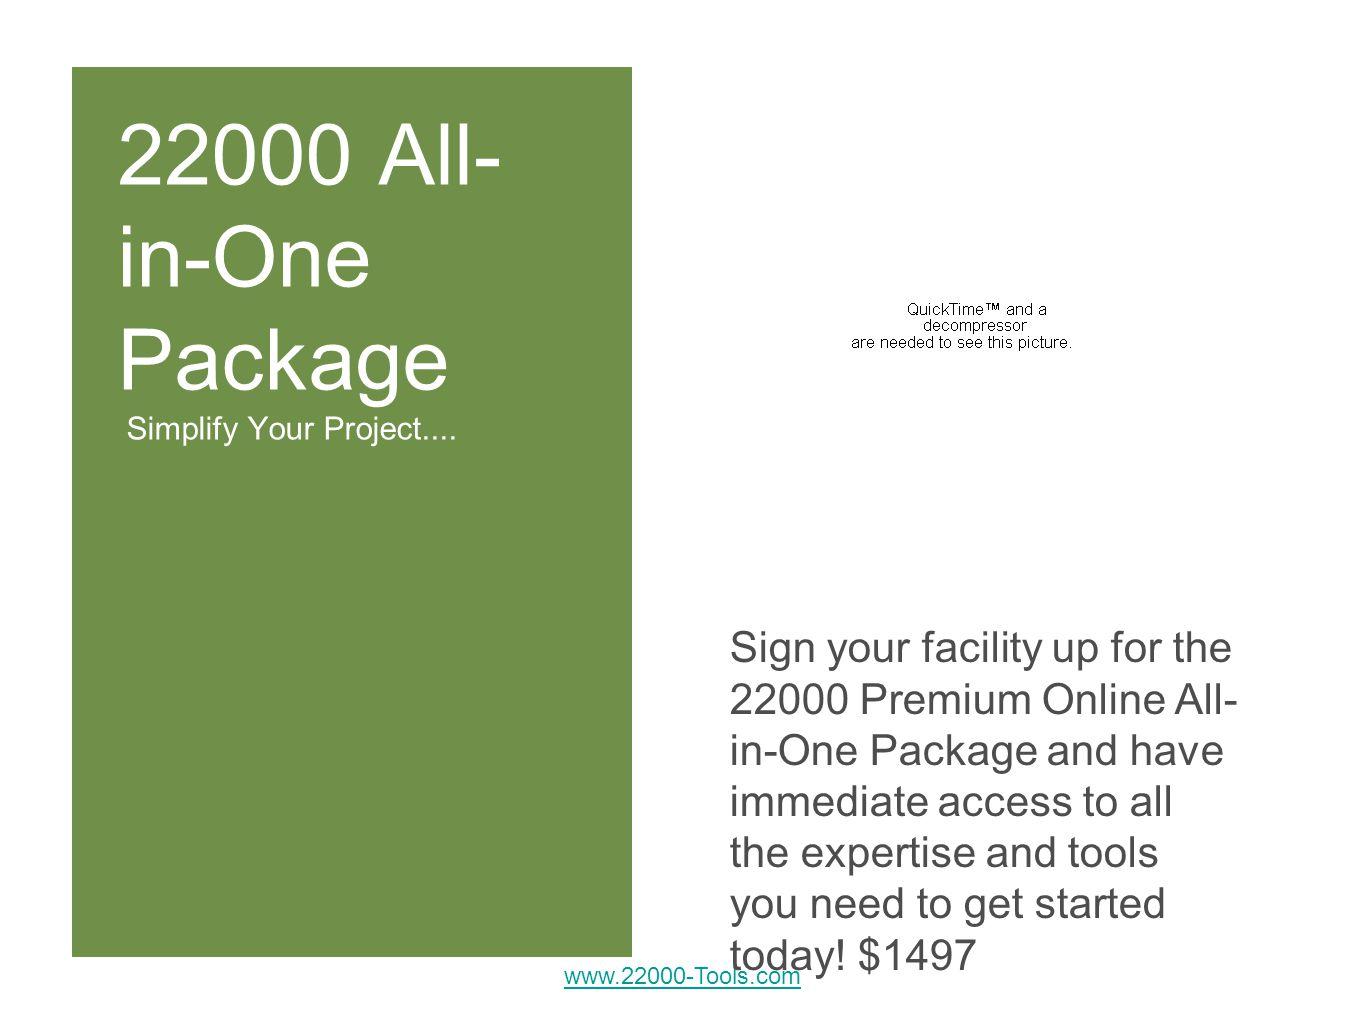 22000 All- in-One Package Simplify Your Project....